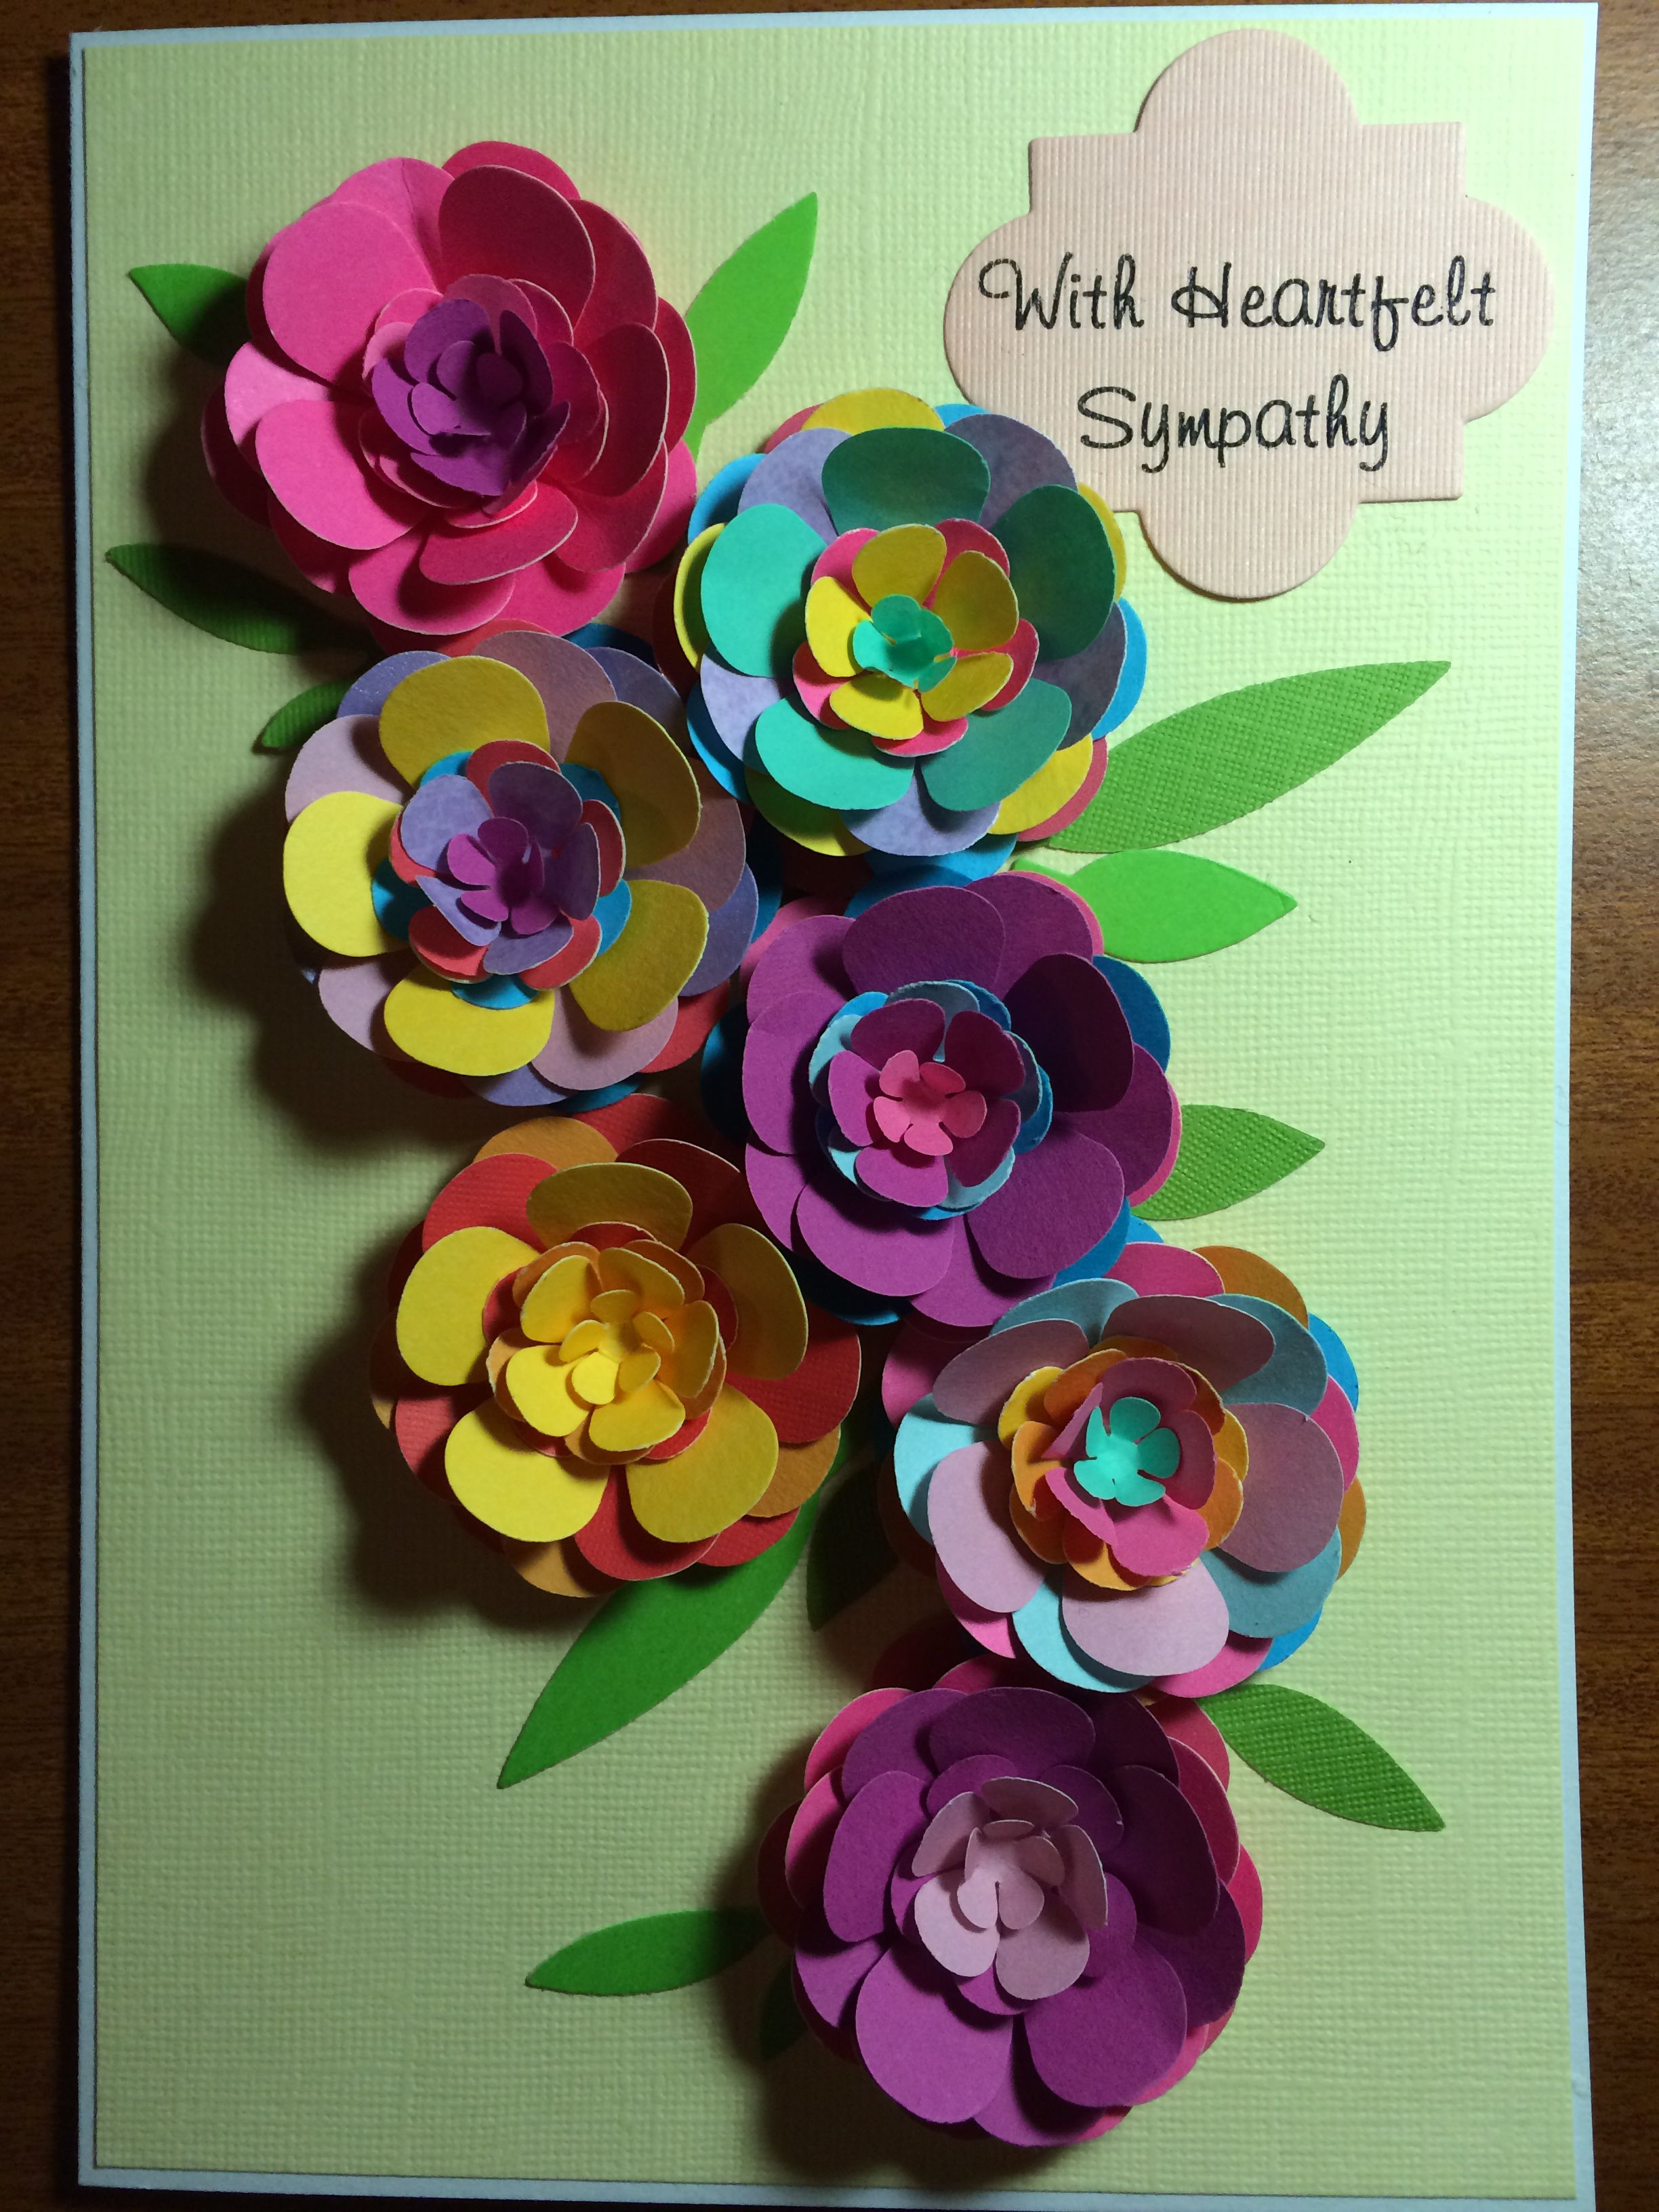 Handmade card. Punched flowers in multi-coloured paper.